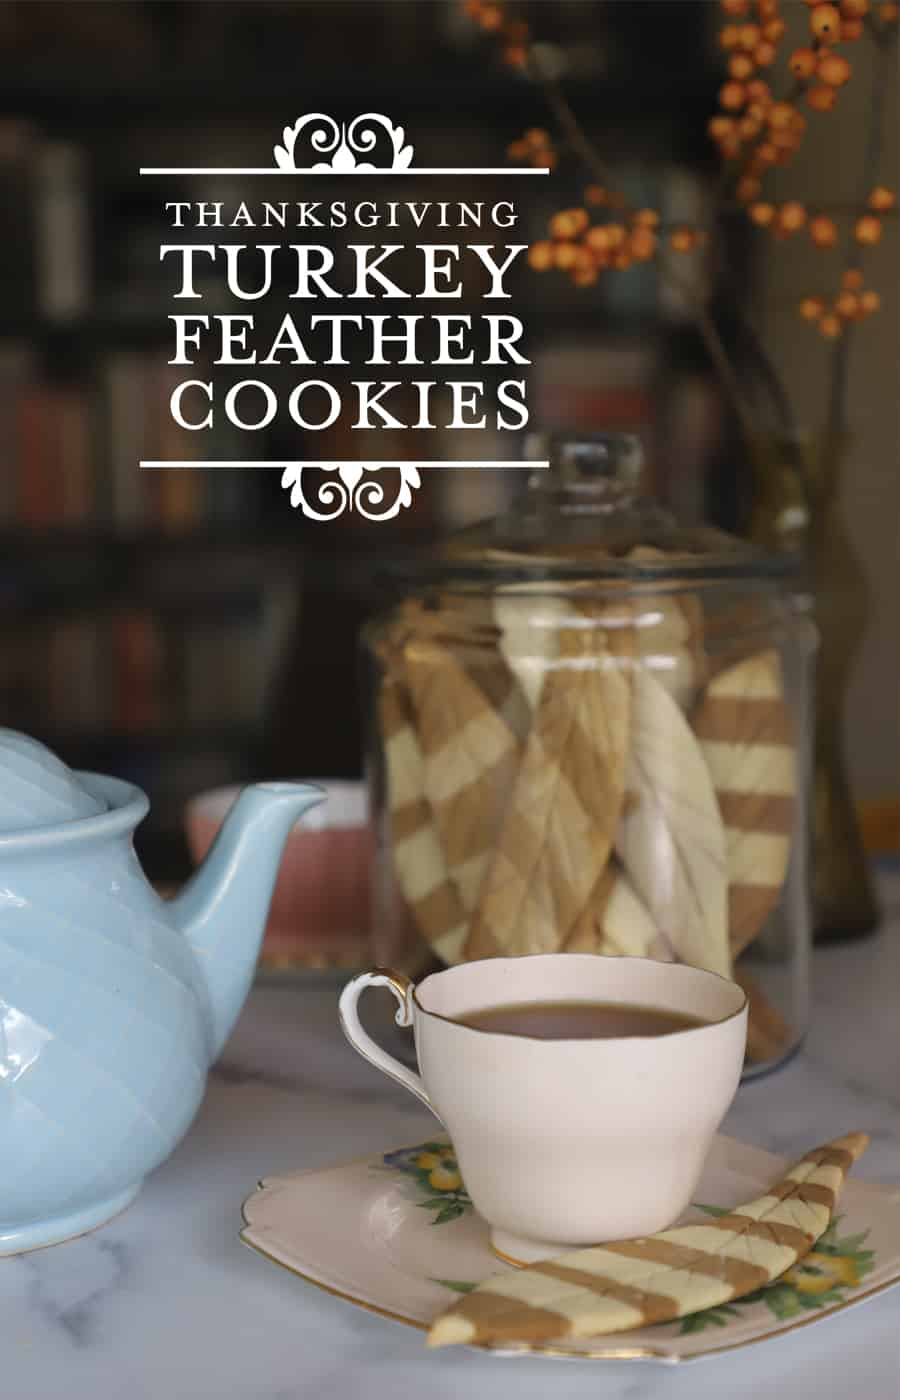 Turkey Feather-shaped cookies for tea time in an Anchor Hocking Jar